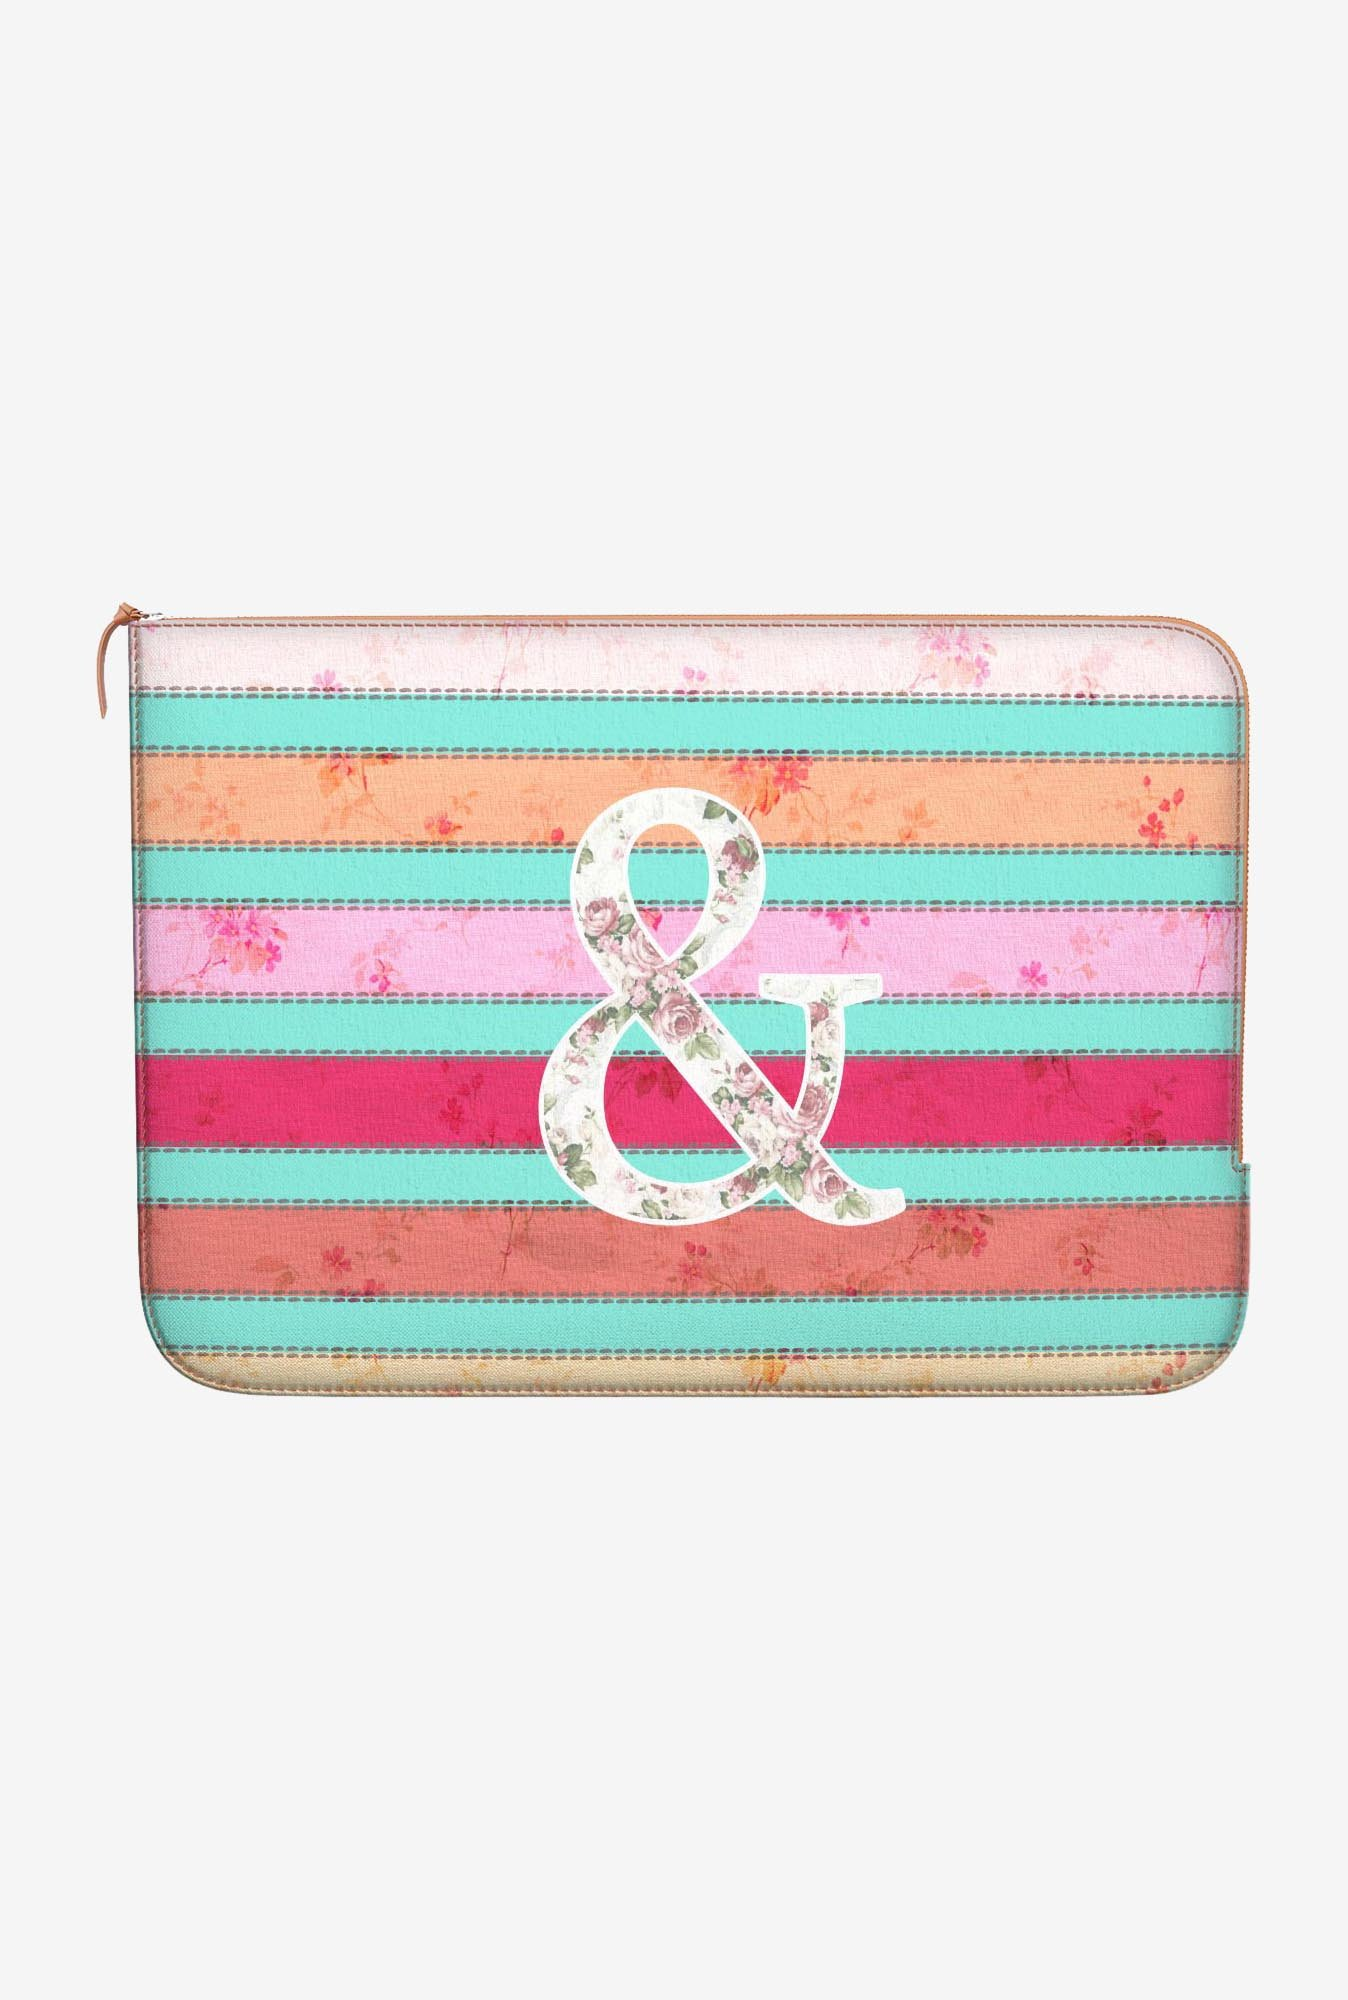 DailyObjects Ampersand MacBook Pro 15 Zippered Sleeve